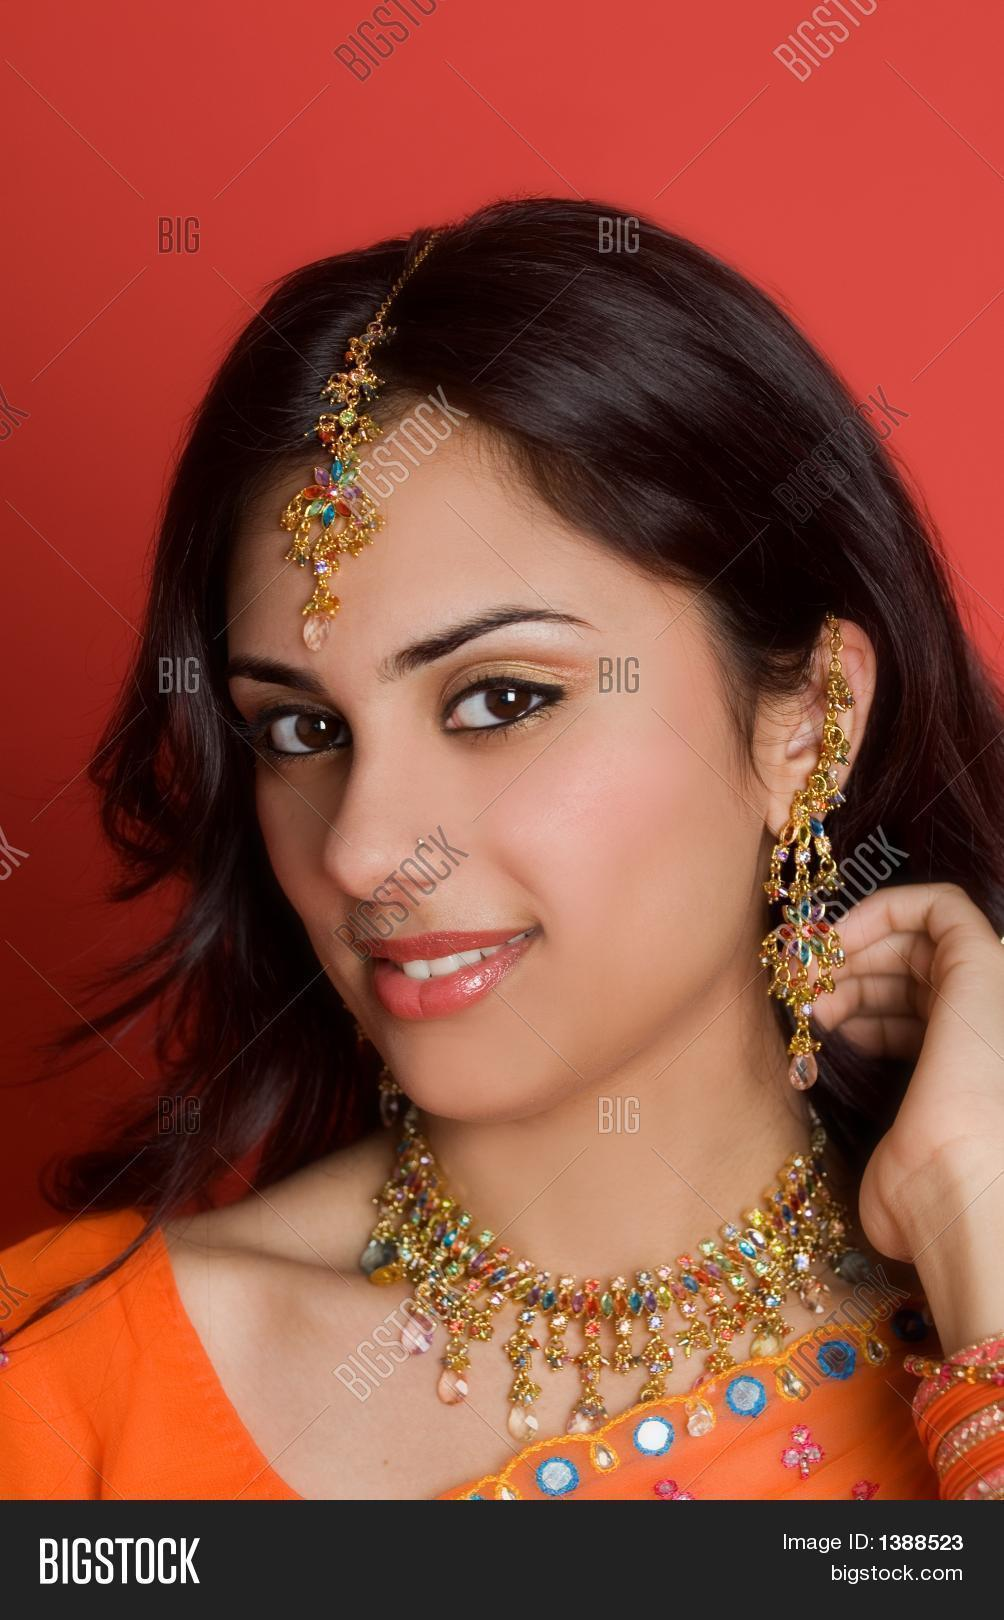 hindu single women in powderhorn A schedule of the speed dating nyc singles have made famous, with events throughout new york,  this speed dating event is for older women and younger men.